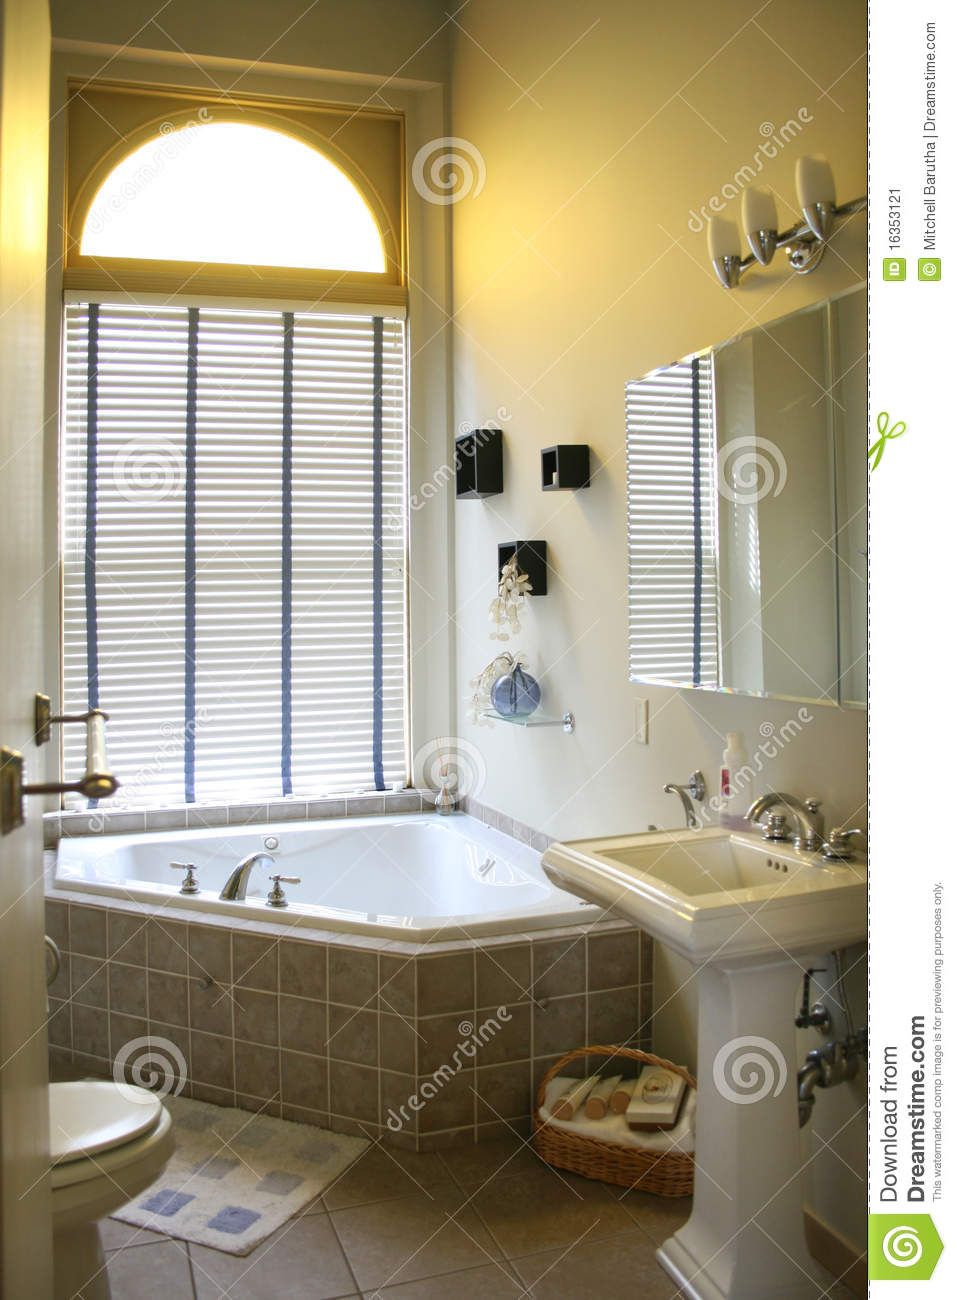 Upscale Bathroom With Corner Tub Stock Image  Image of